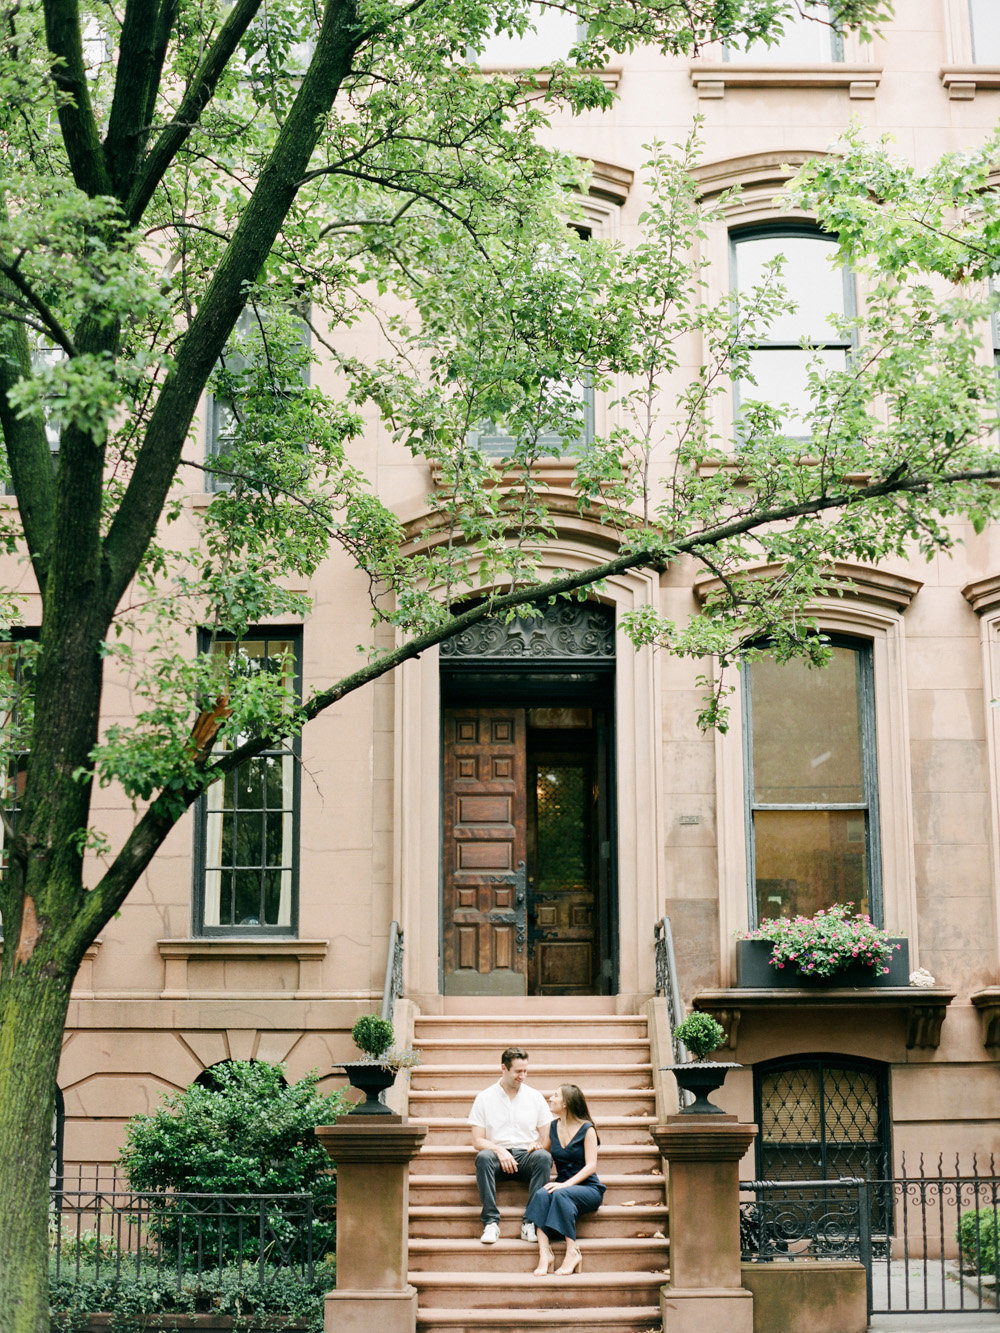 mary-dougherty-engaged-brooklyn-stoop-photographer04